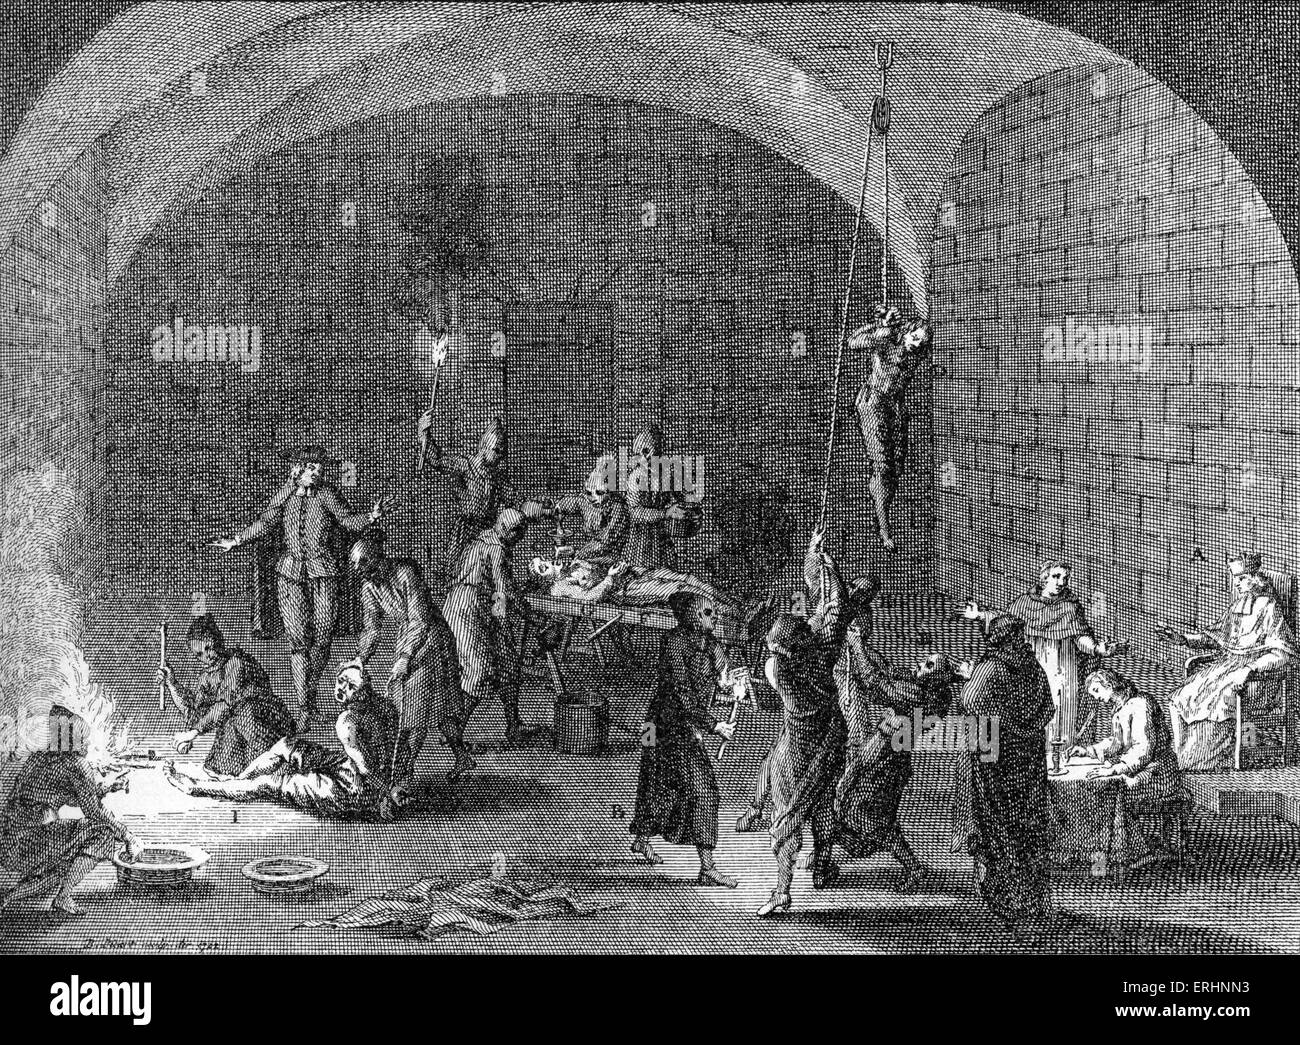 Torture chamber of an Inquisition tribunal - engraving, artist unknown. - Stock Image